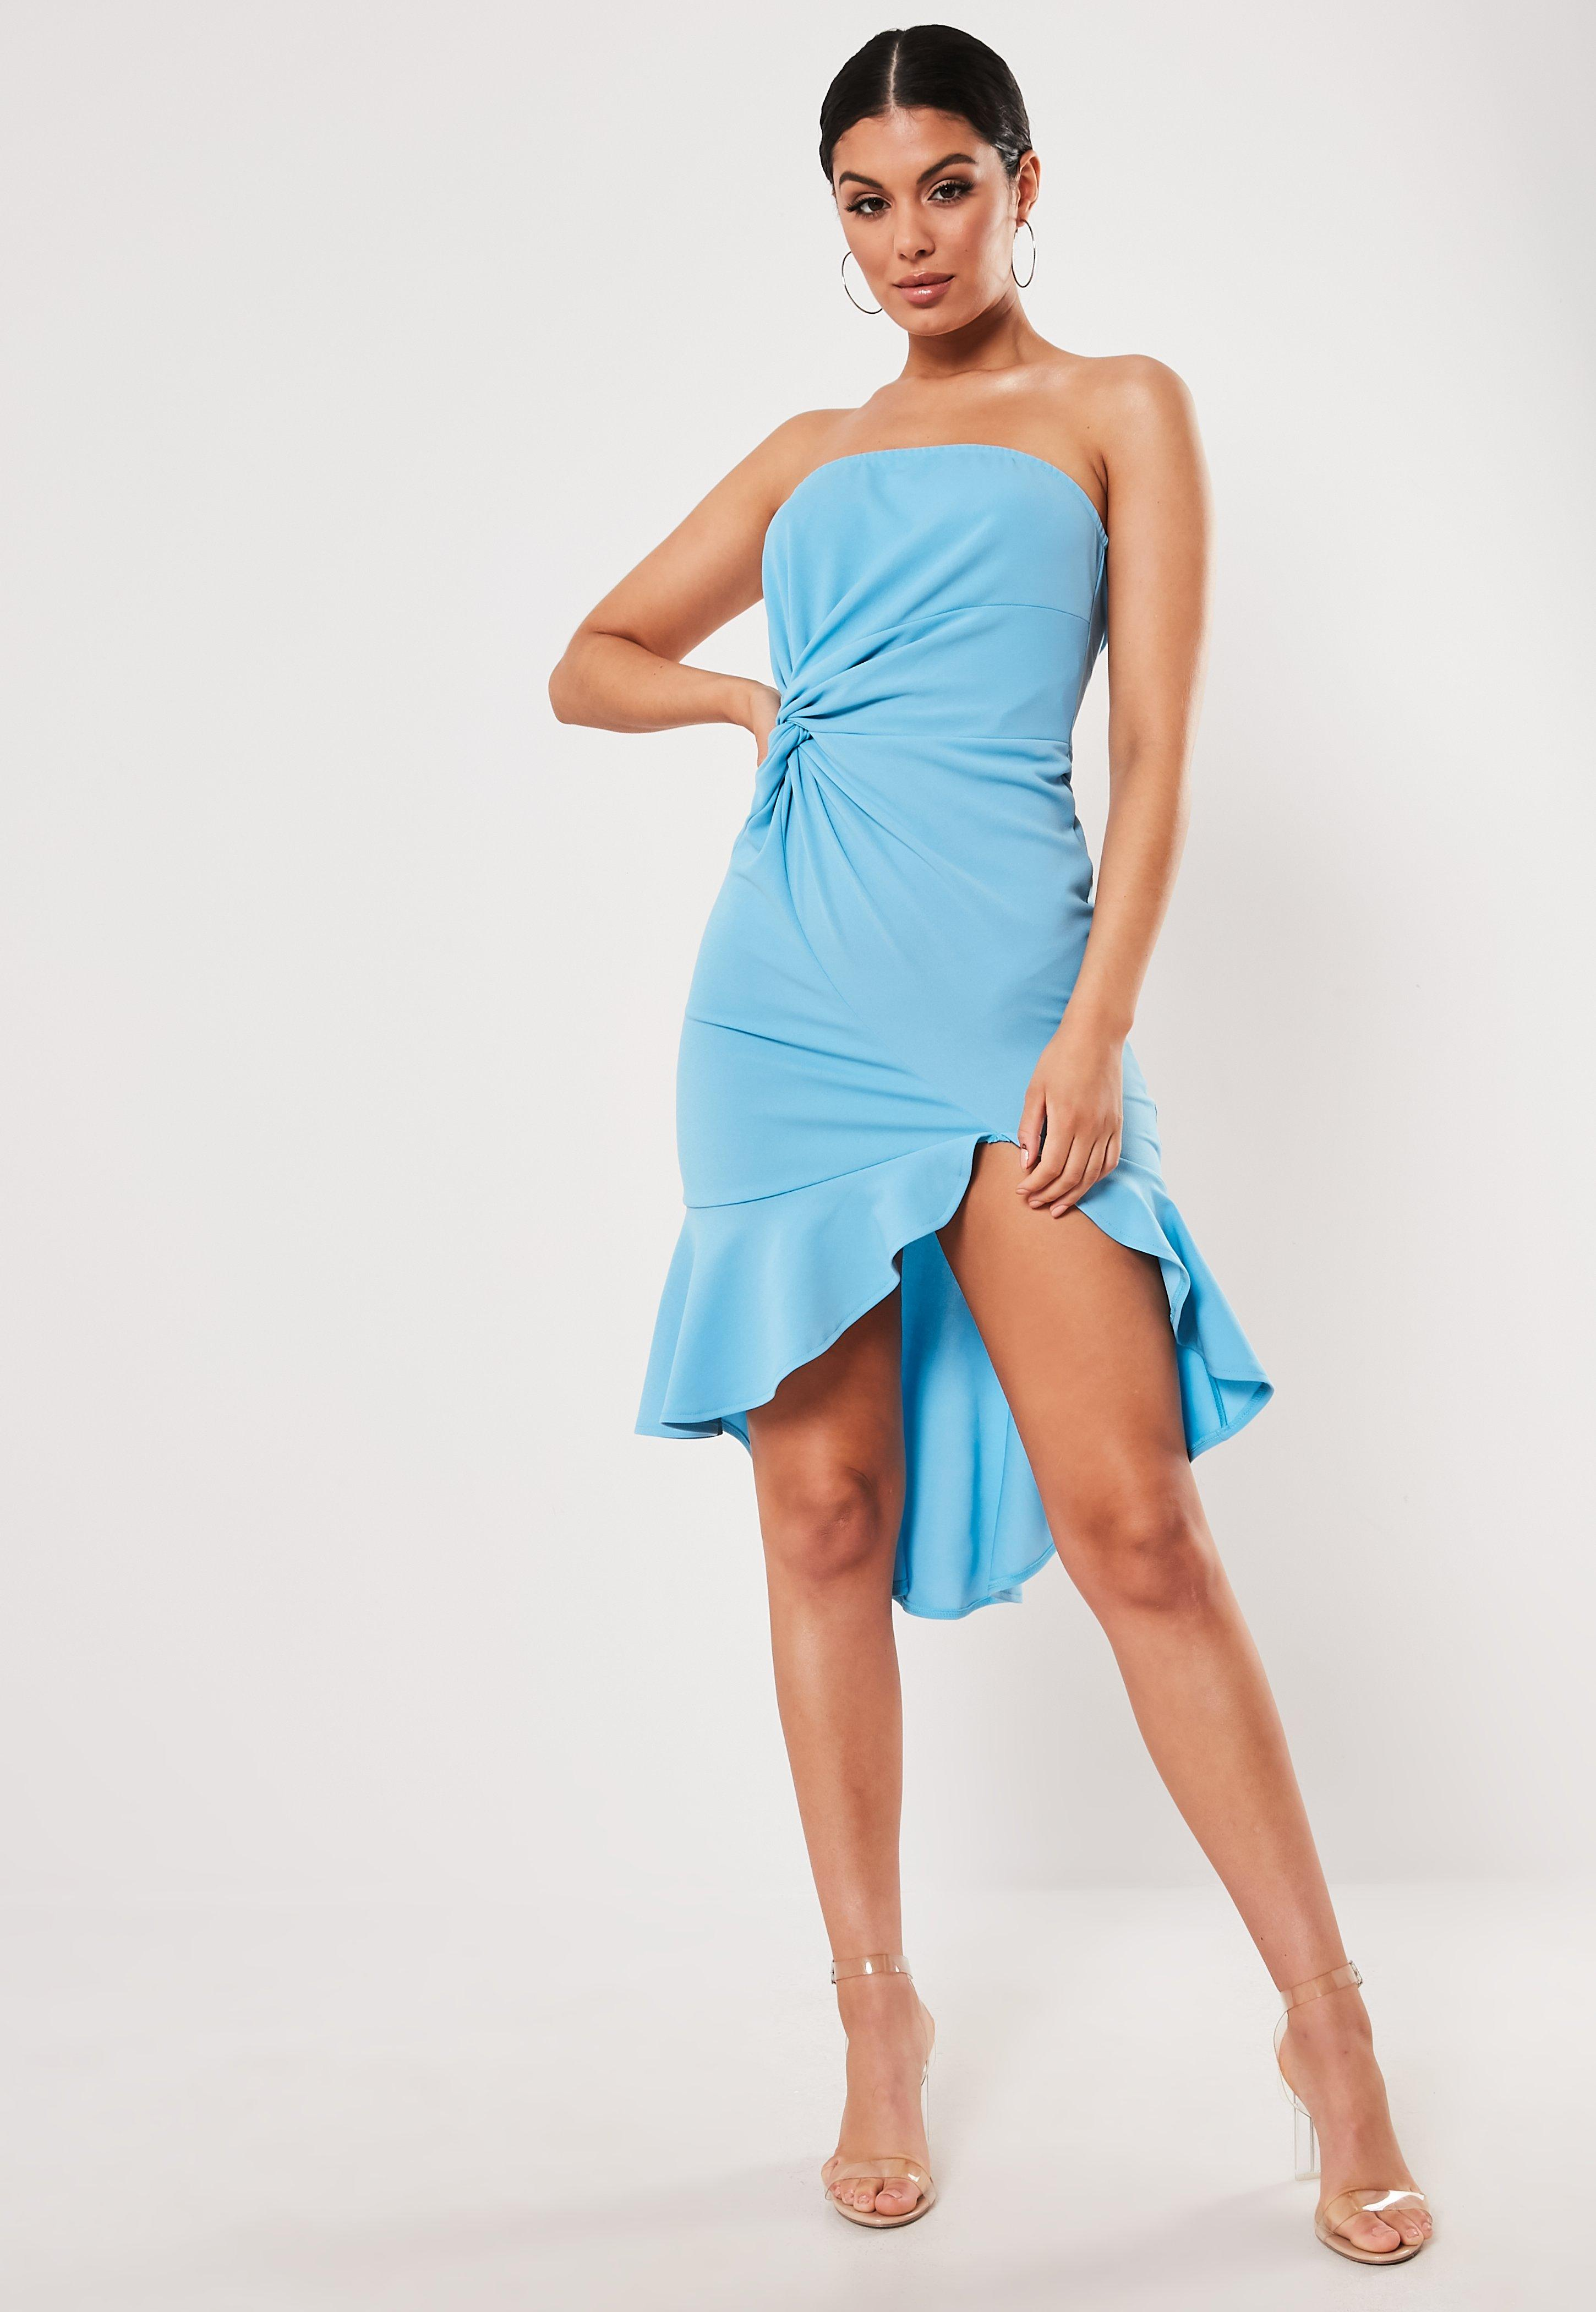 88ef829b57c Race Day Dresses - Races Dresses   Outfits - Missguided